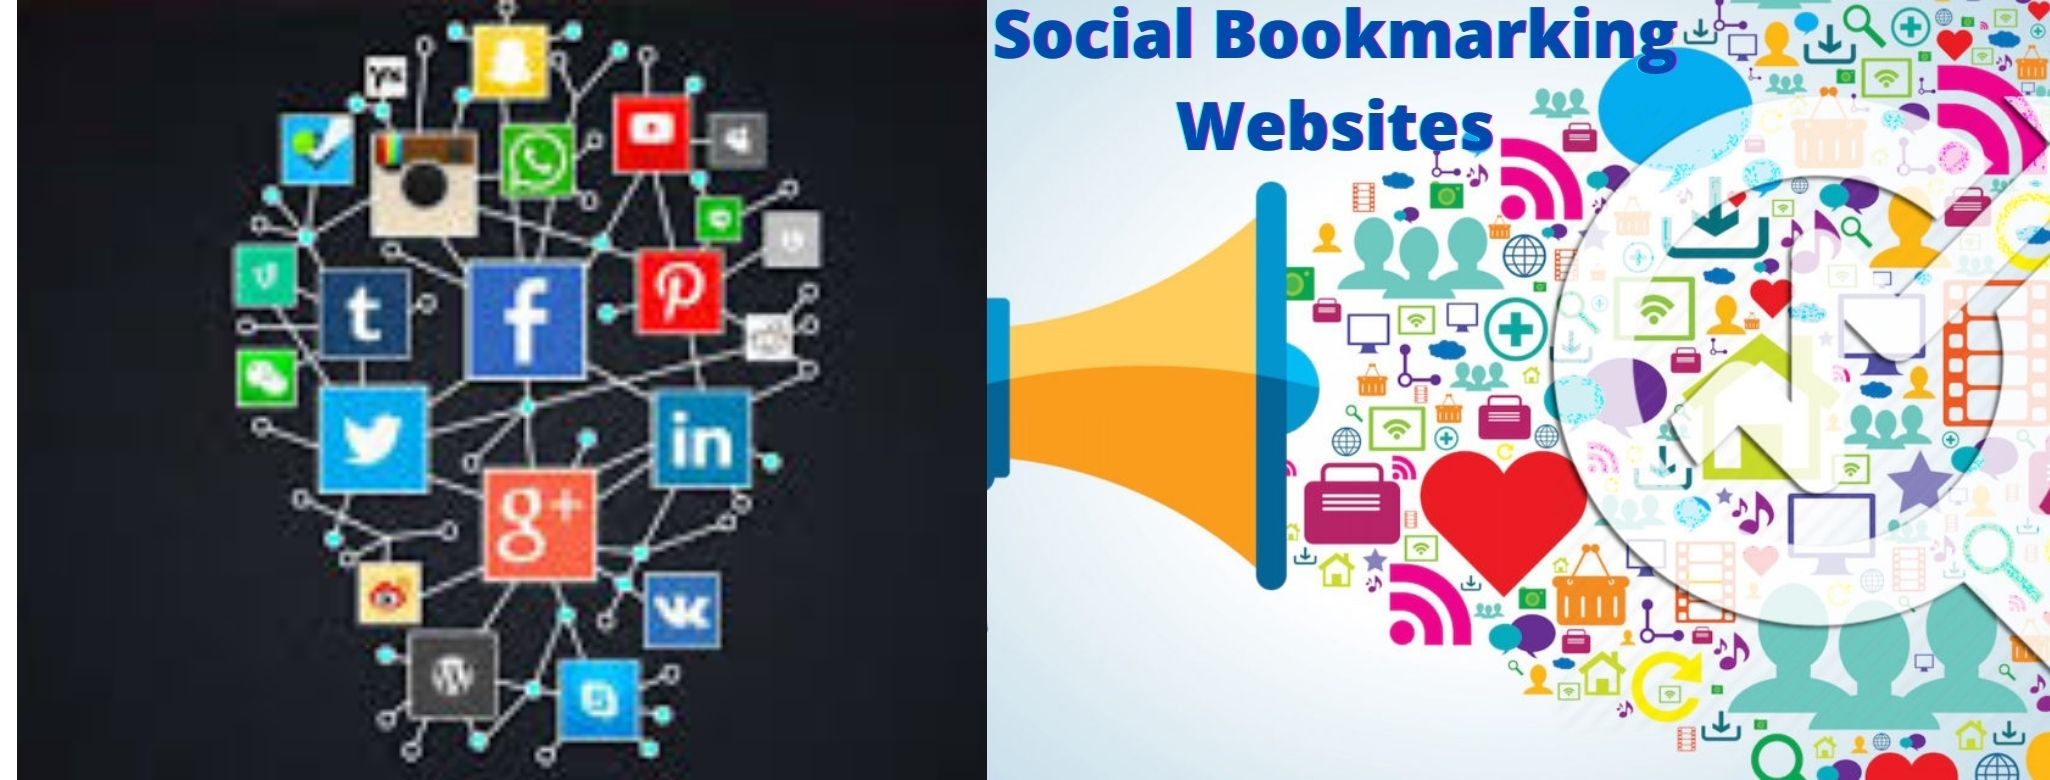 social-bookmarking-websites